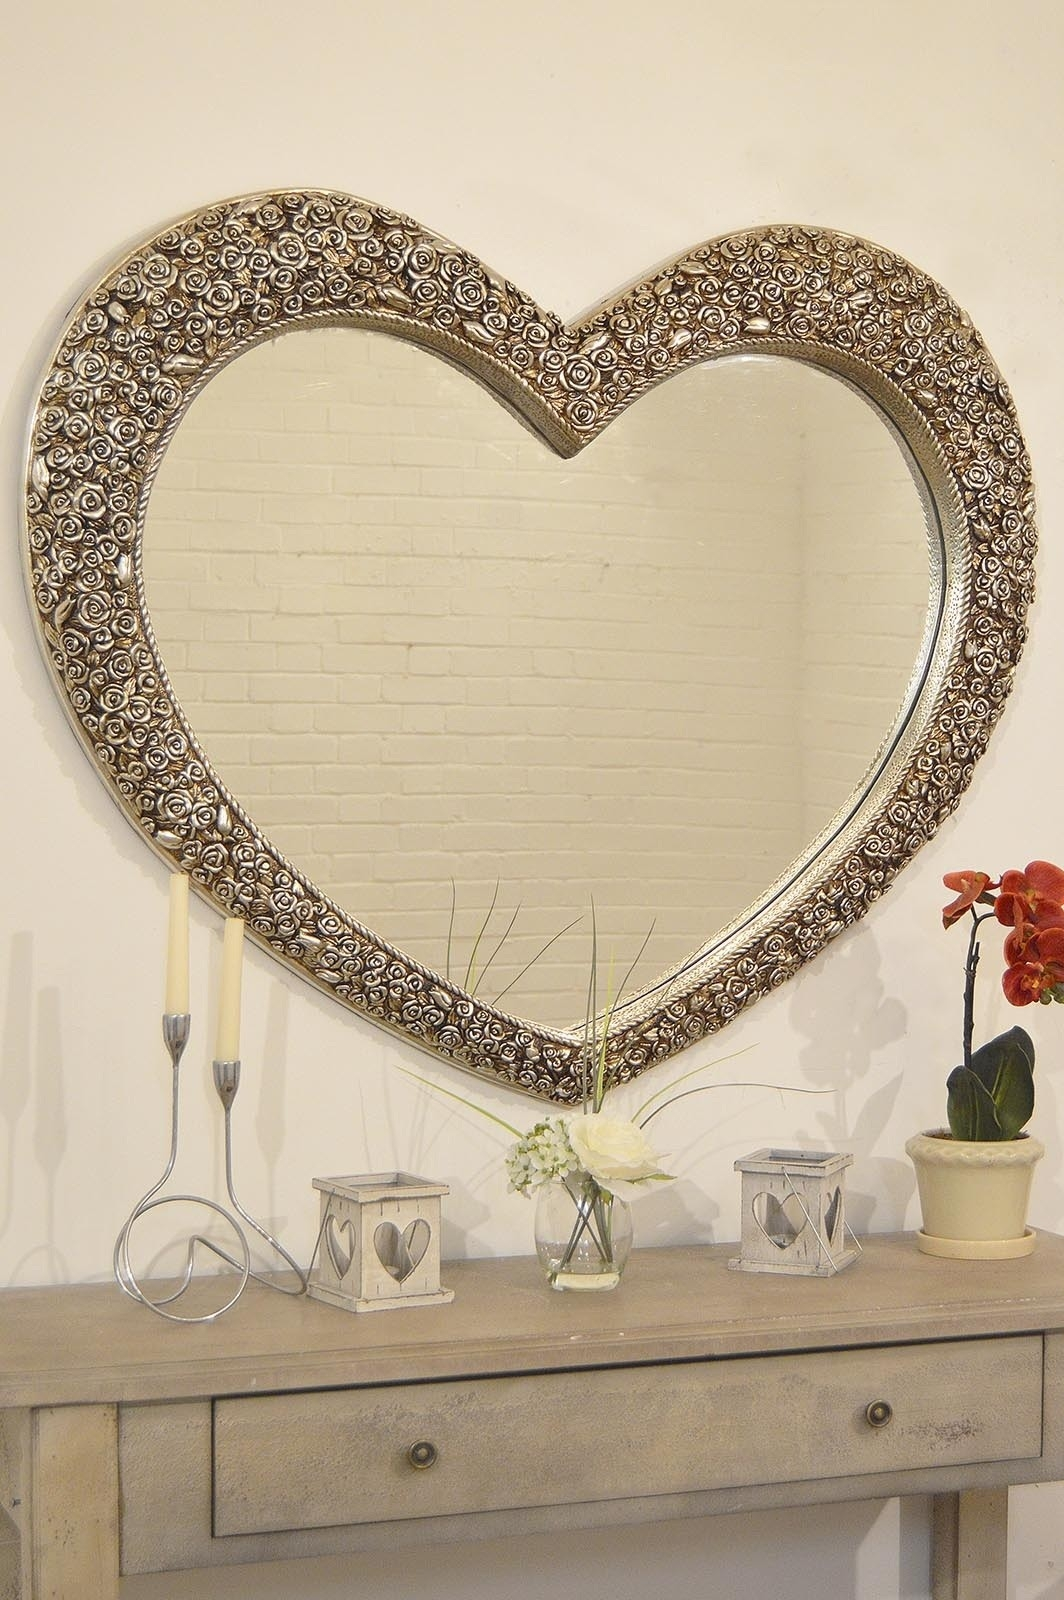 Wall Mirrors Images Full Length Wall Mirrors Decorative Wall Within Antique Large Mirrors For Sale (Image 15 of 15)